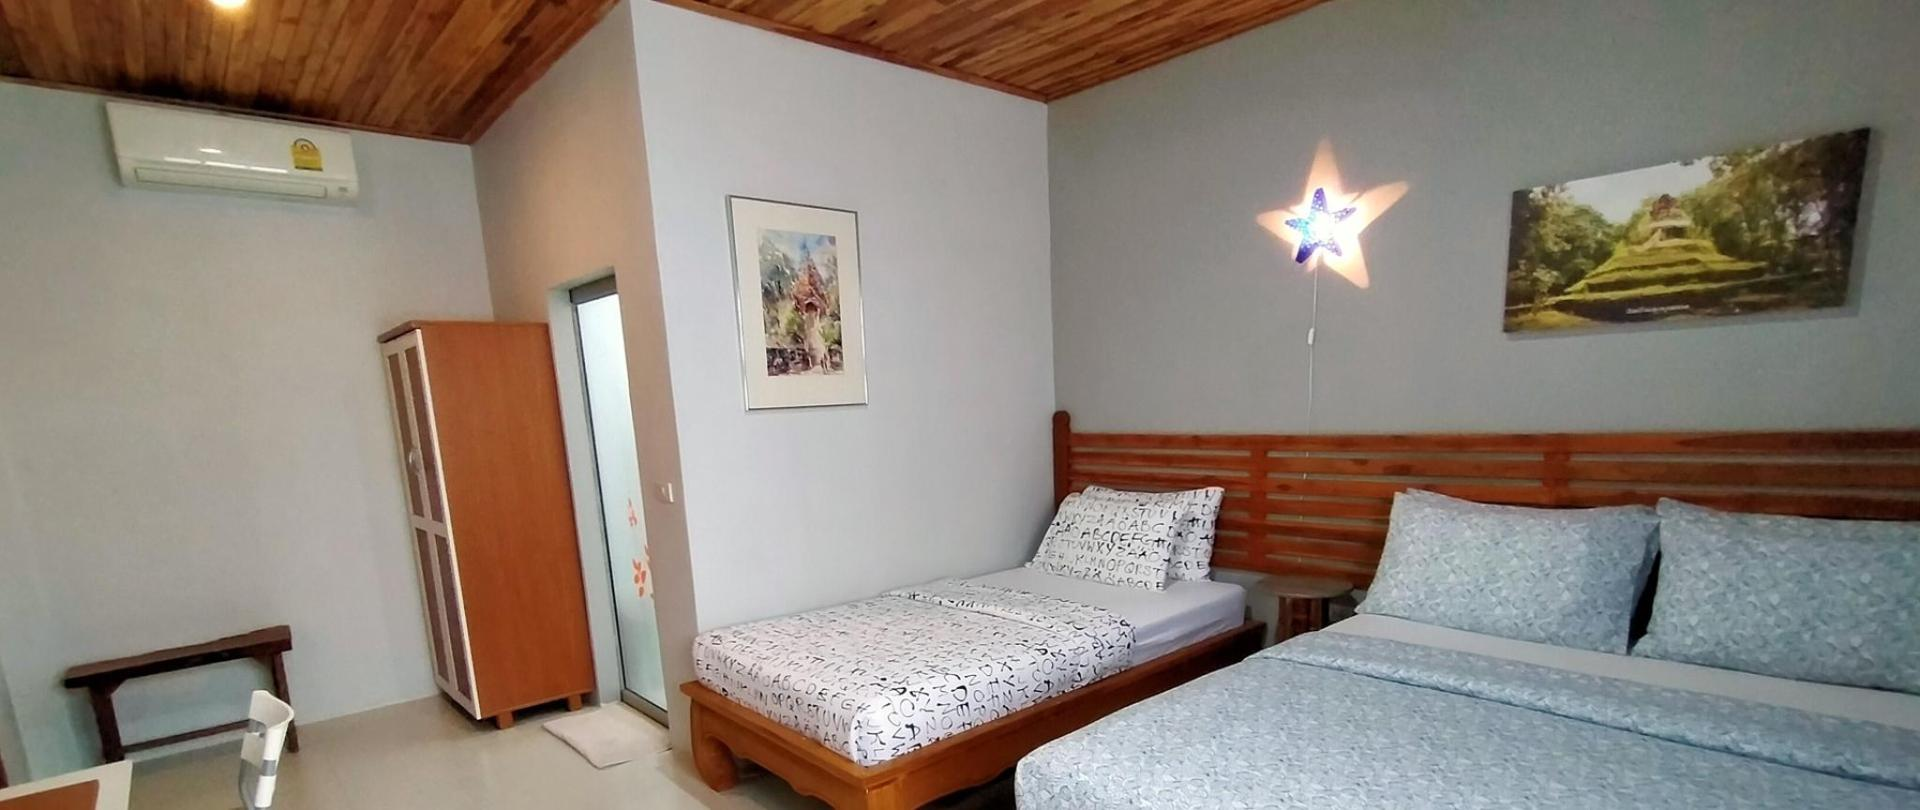 Bedroom-standard-triple-room-3-guests-2-beds-air-conditioning-bath-room-I-Ya-Guesthouse-Phayao.jpg